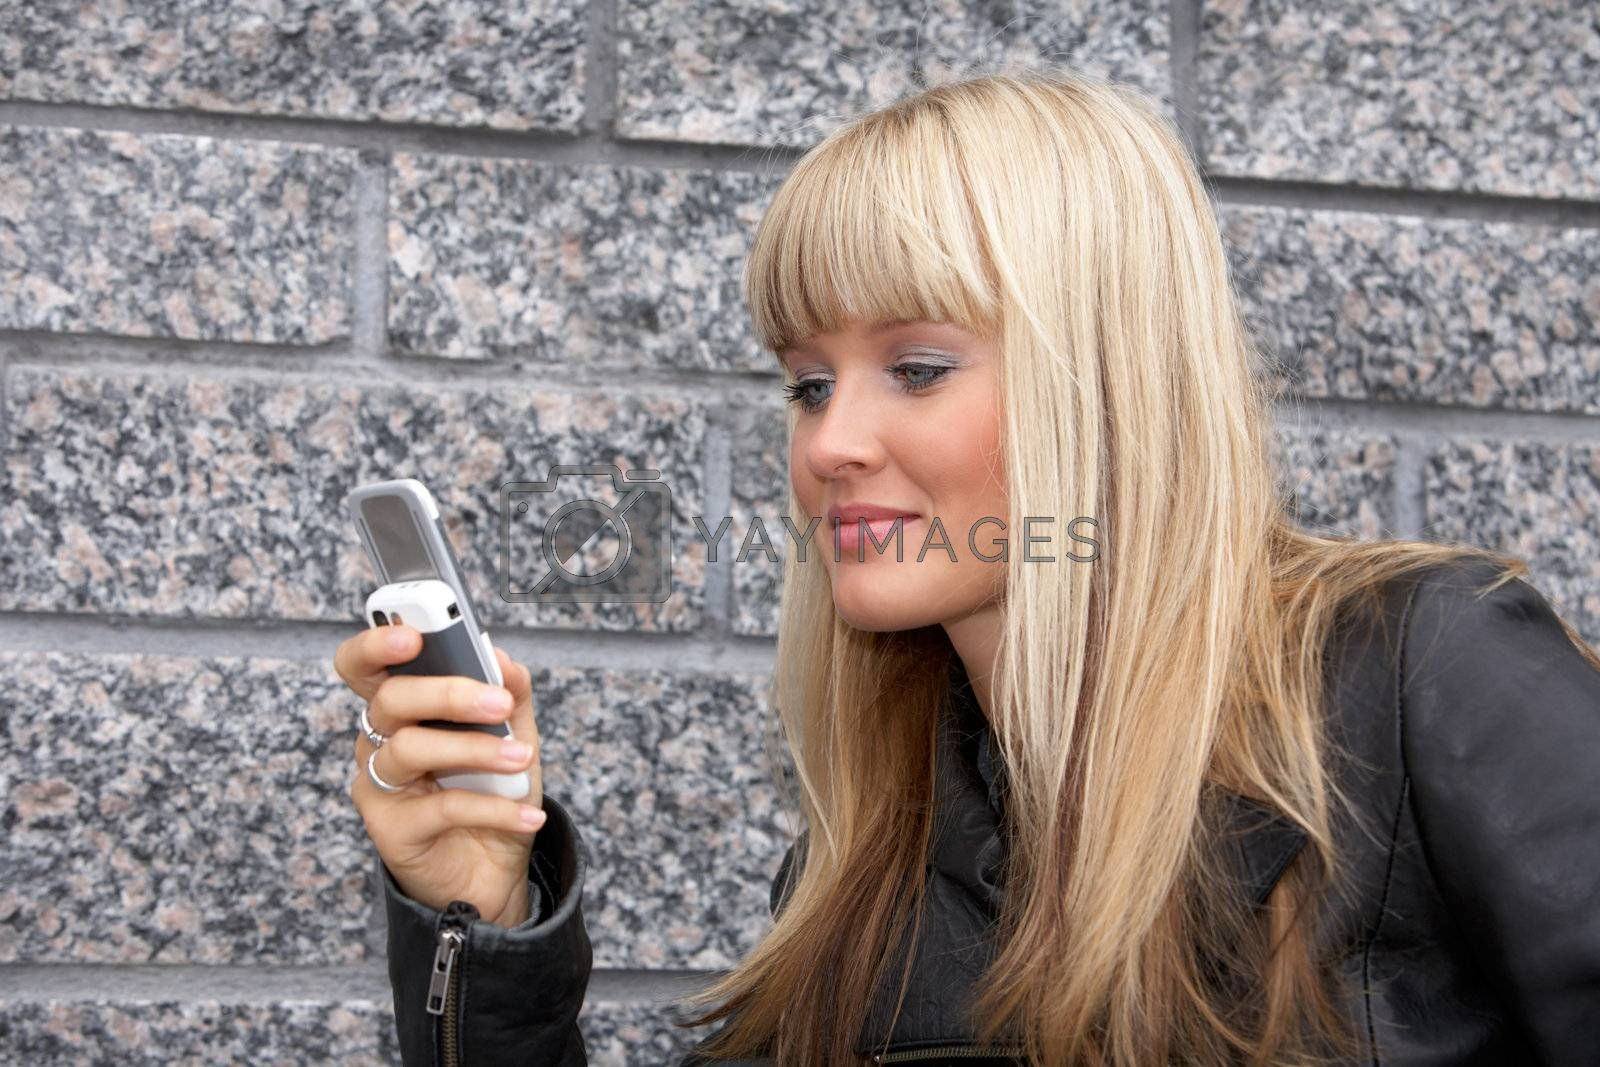 Young woman looking at mobile phone, smiling